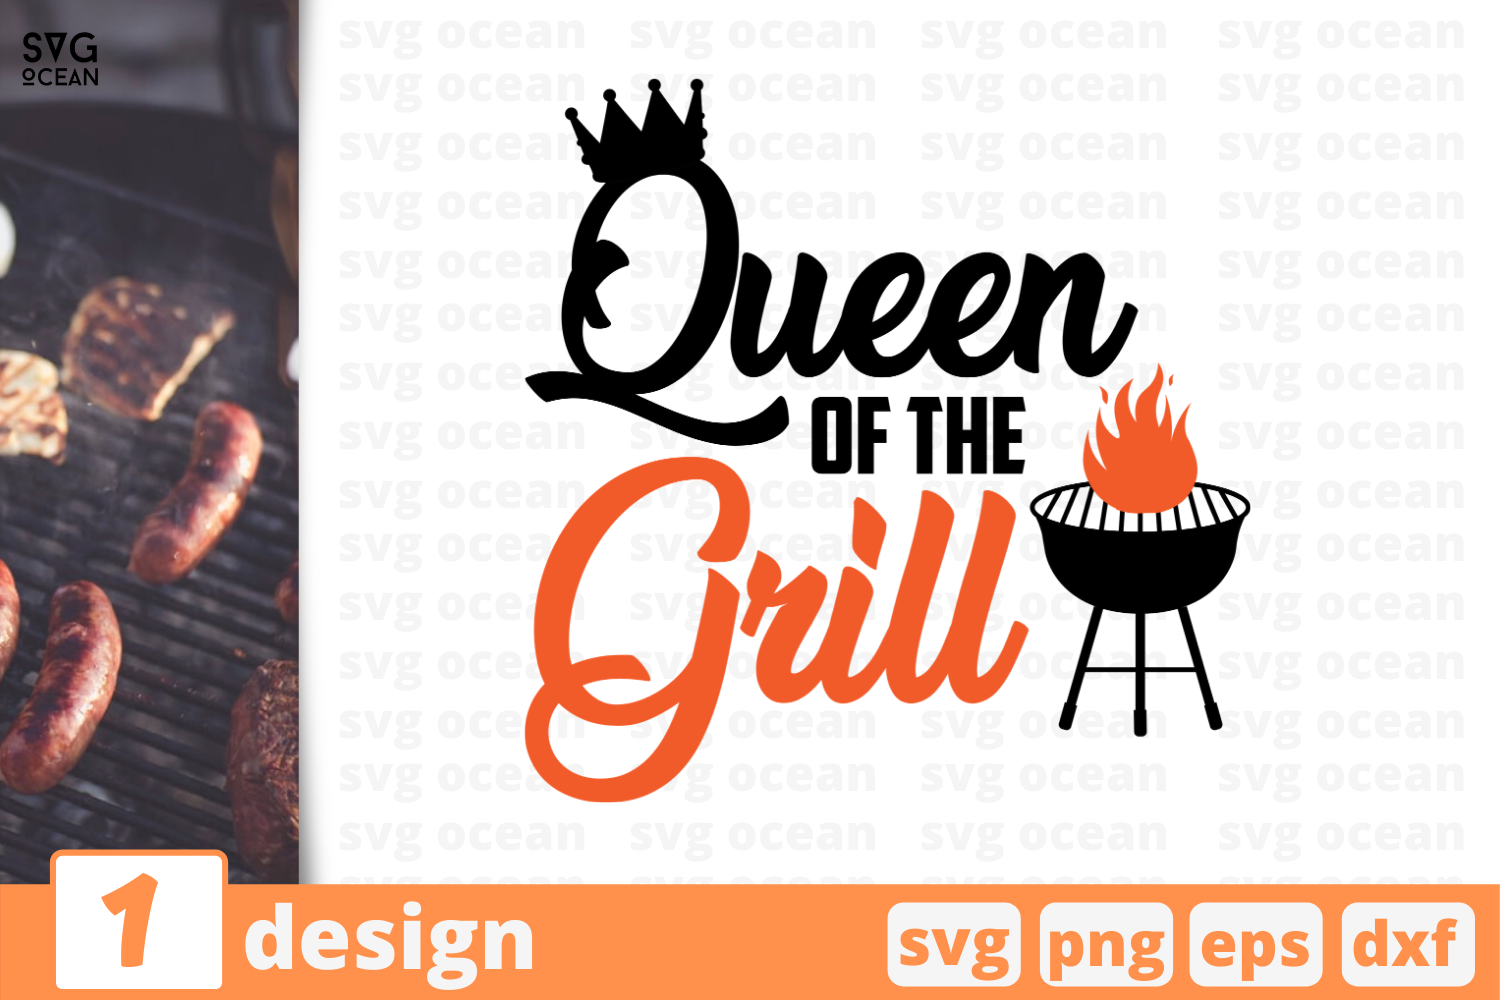 Download Free Queen Of The Grill Graphic By Svgocean Creative Fabrica for Cricut Explore, Silhouette and other cutting machines.